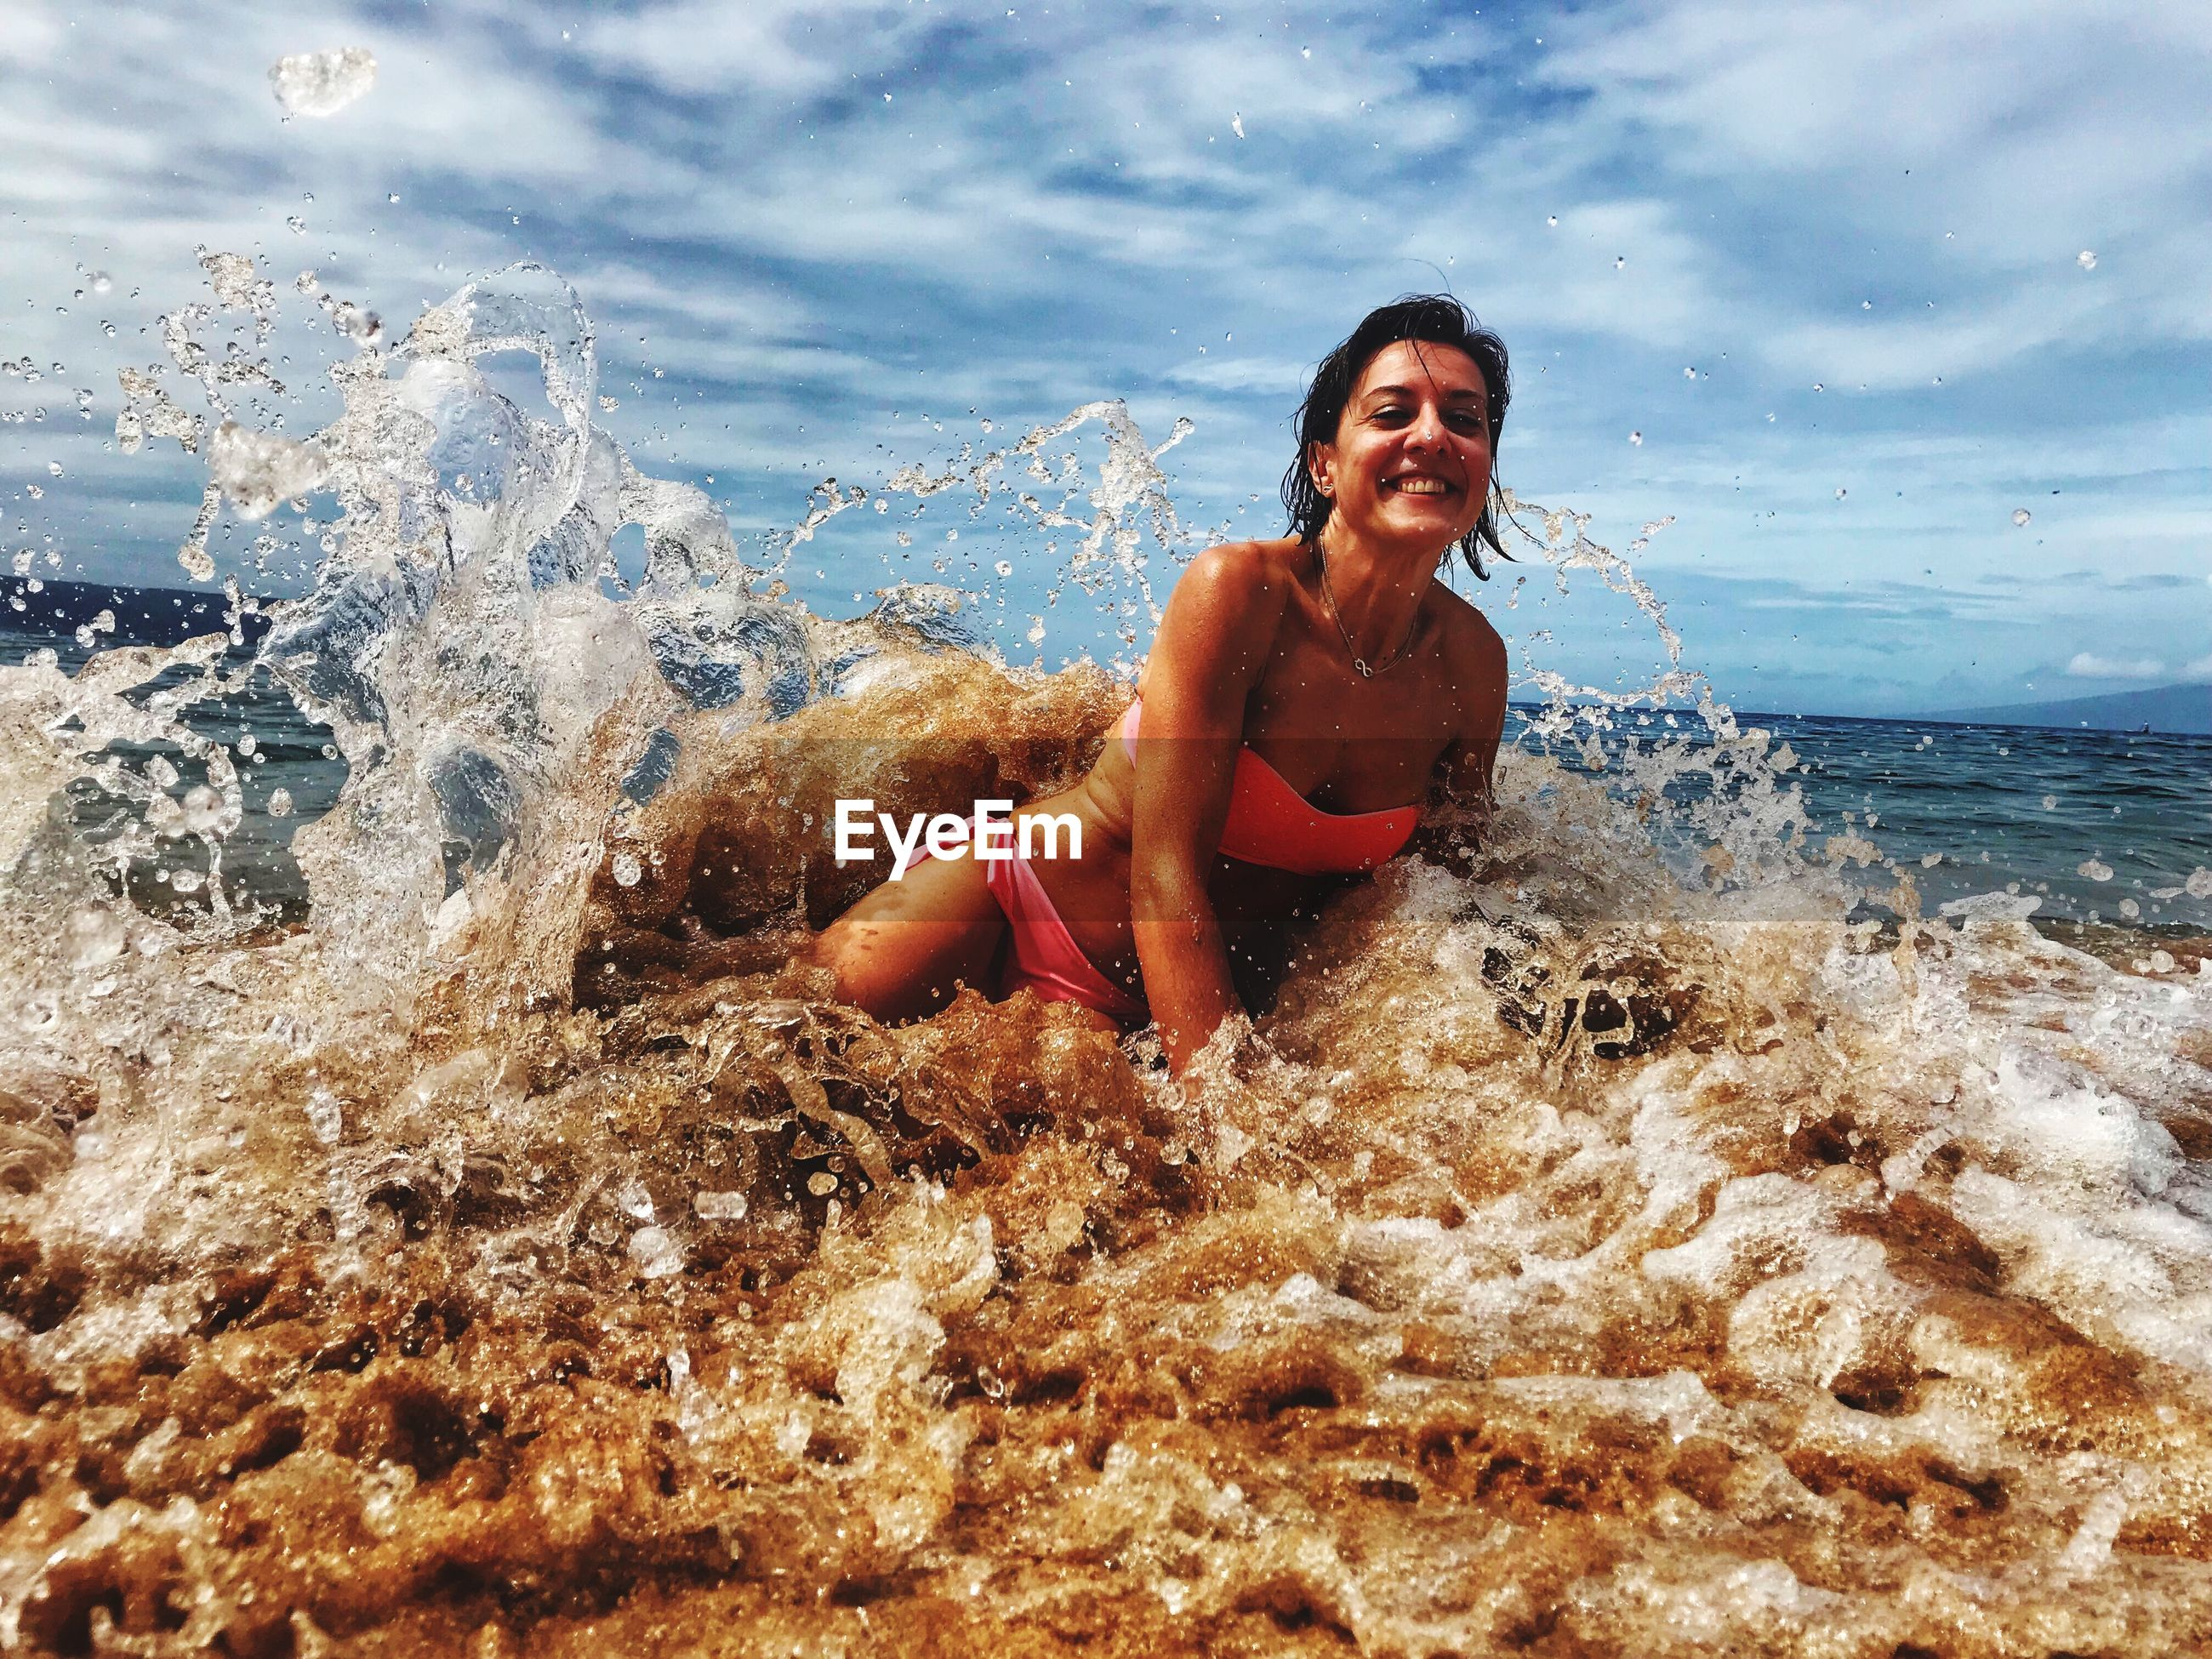 Portrait of smiling woman playing in waves on shore at beach